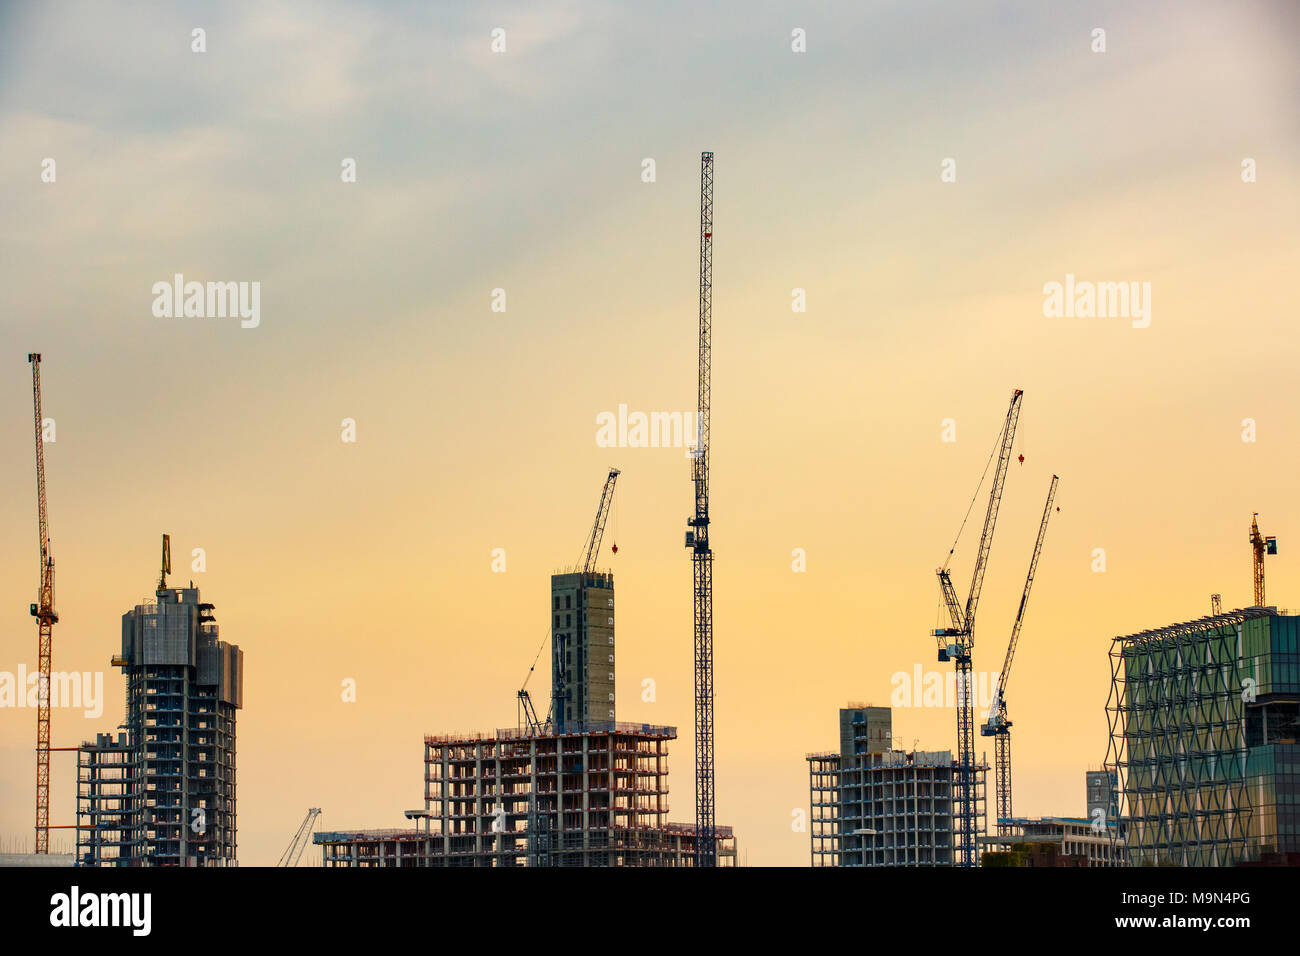 New skyscrapers under construction with tall cranes against yellow sky. Construction business and industry, urbanisation, urban sprawl real estate bub - Stock Image